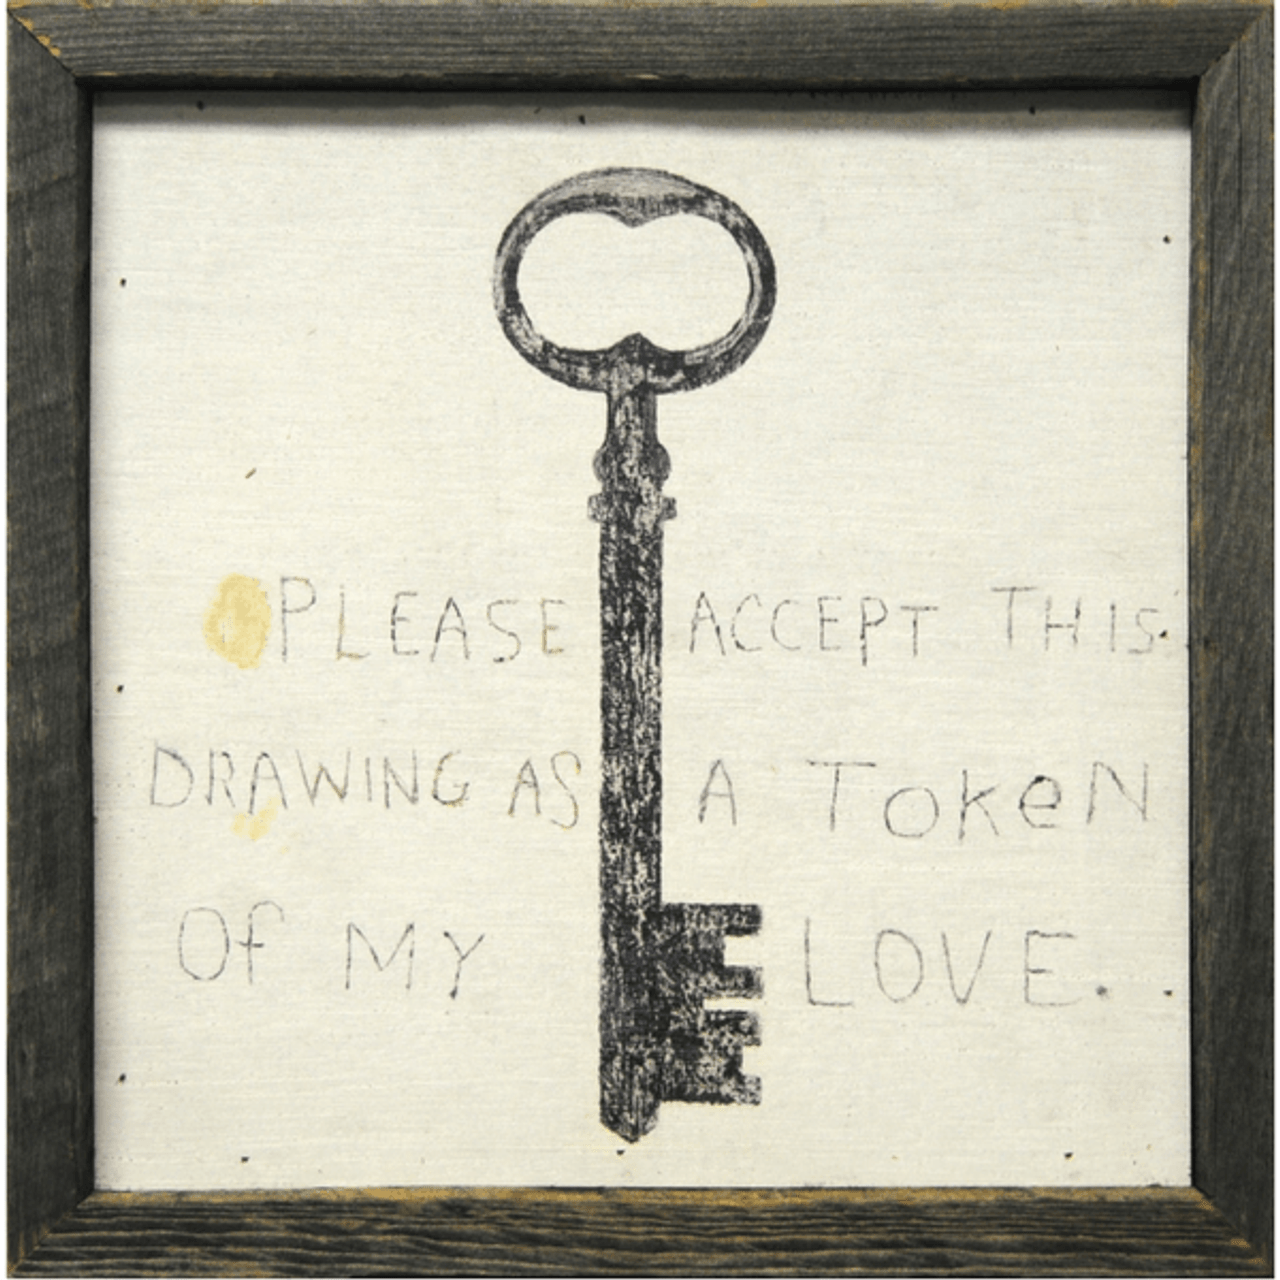 art print with a cream background and a black key